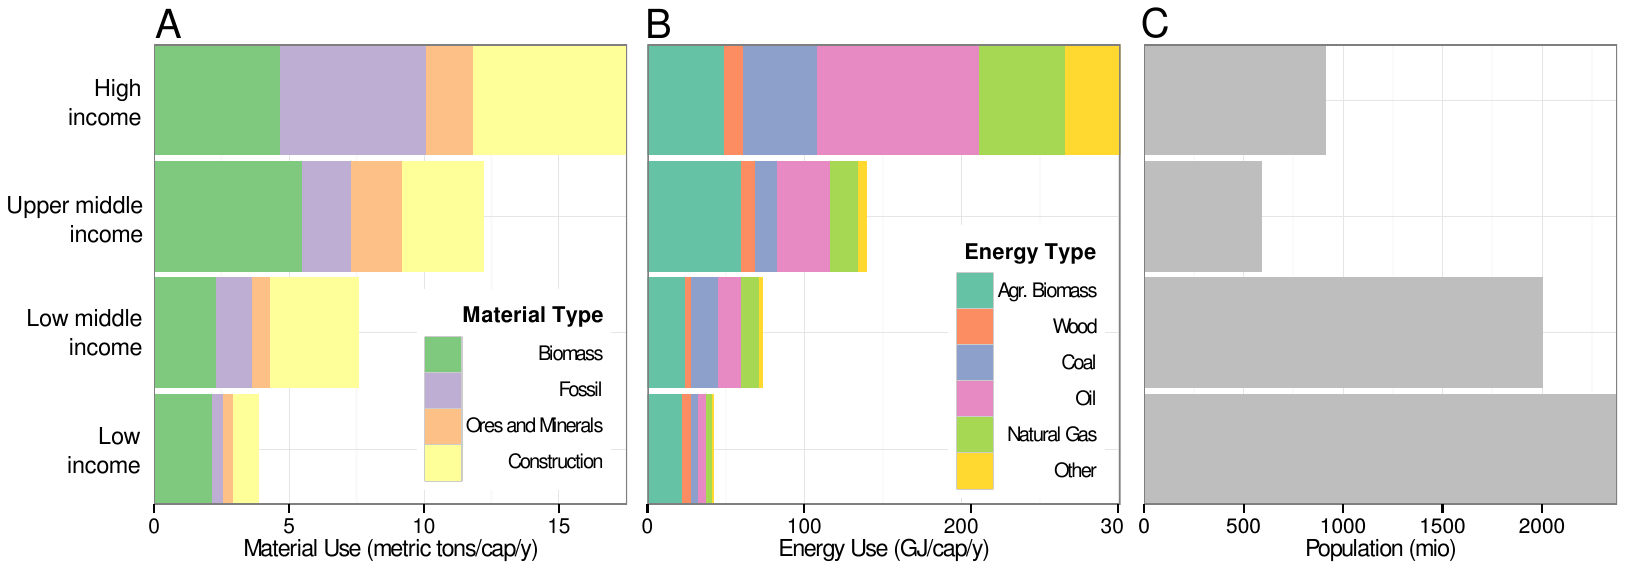 Year 2000 (a) material and (b) energy use per capita, and (c) total population by World Bank income groups (source).